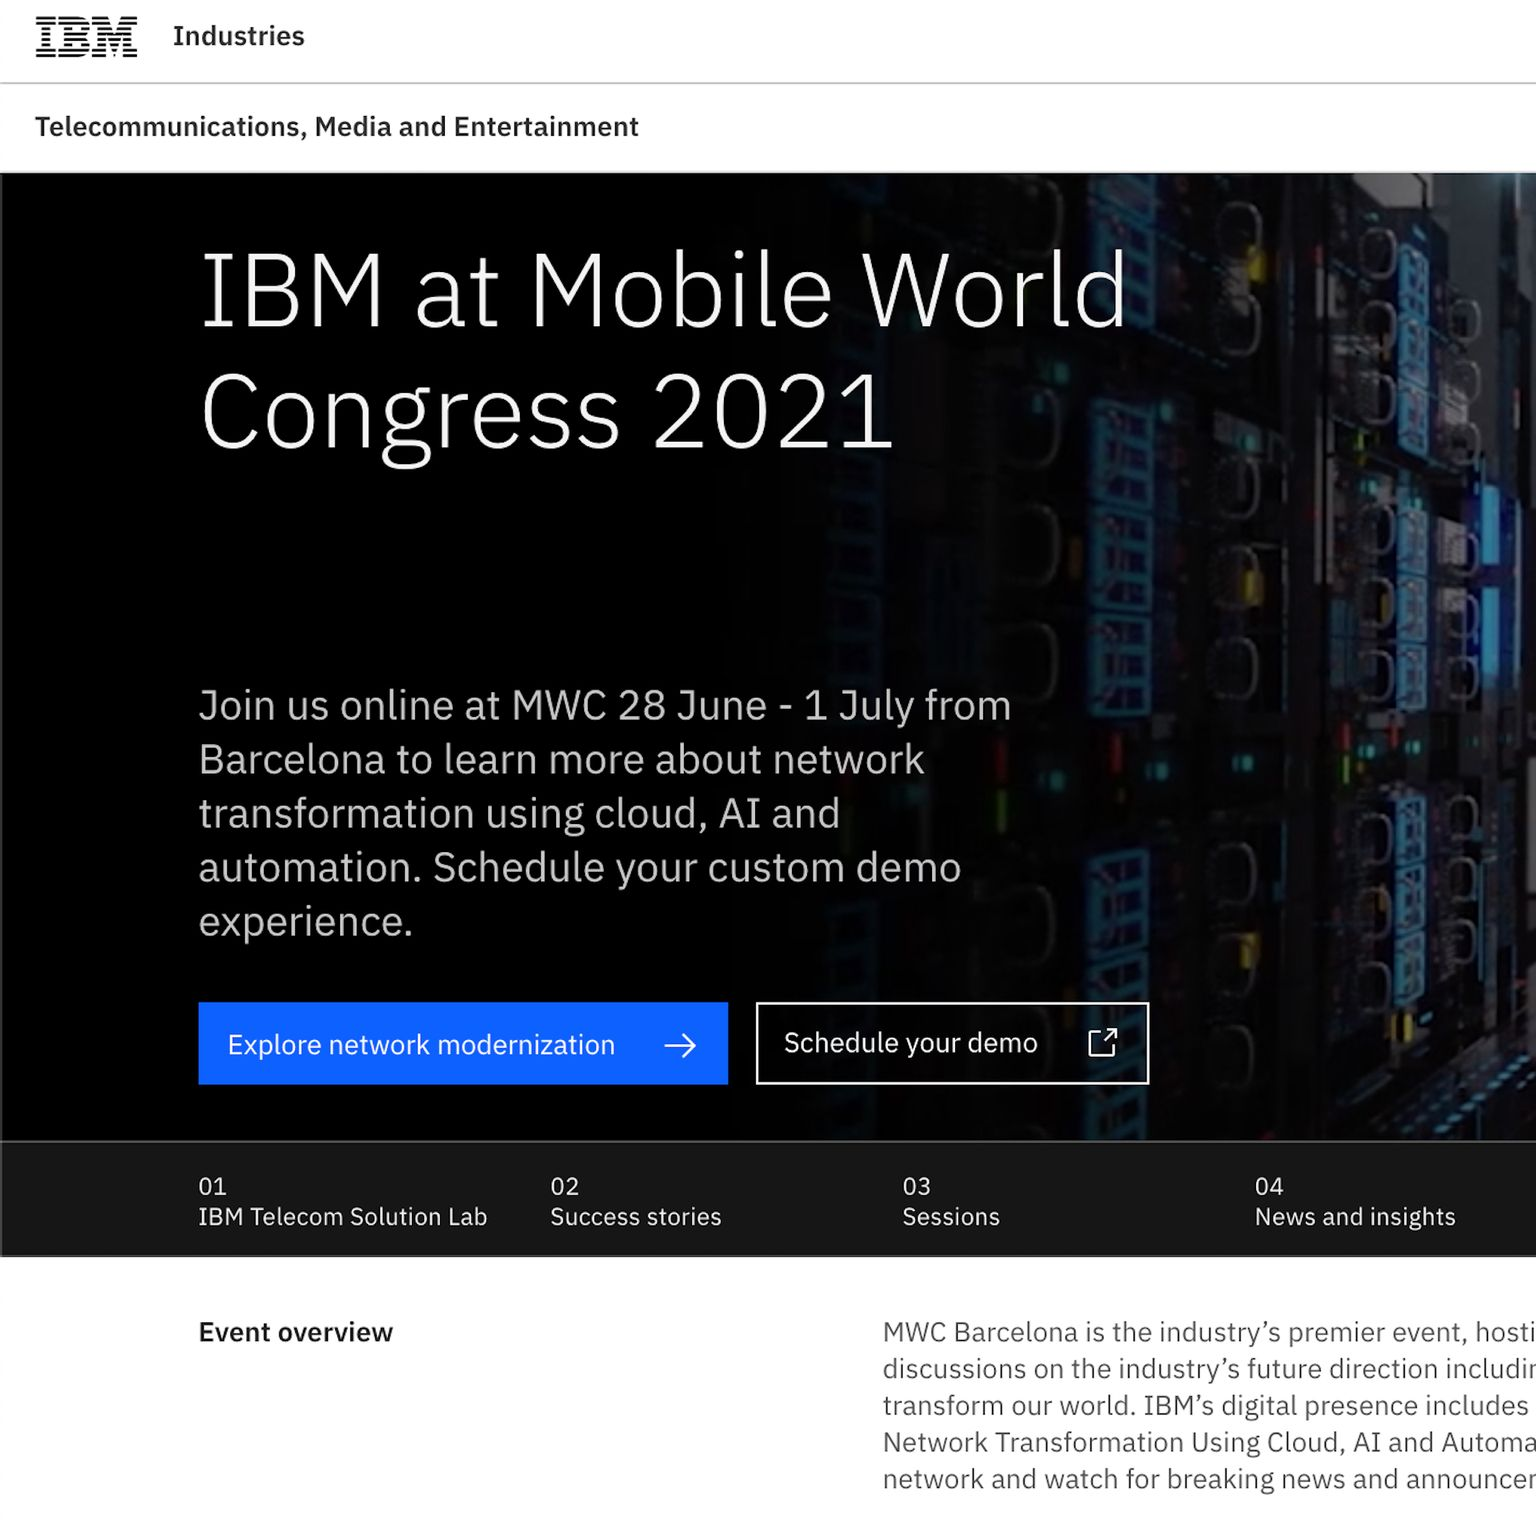 Explore more about IBM at MWC